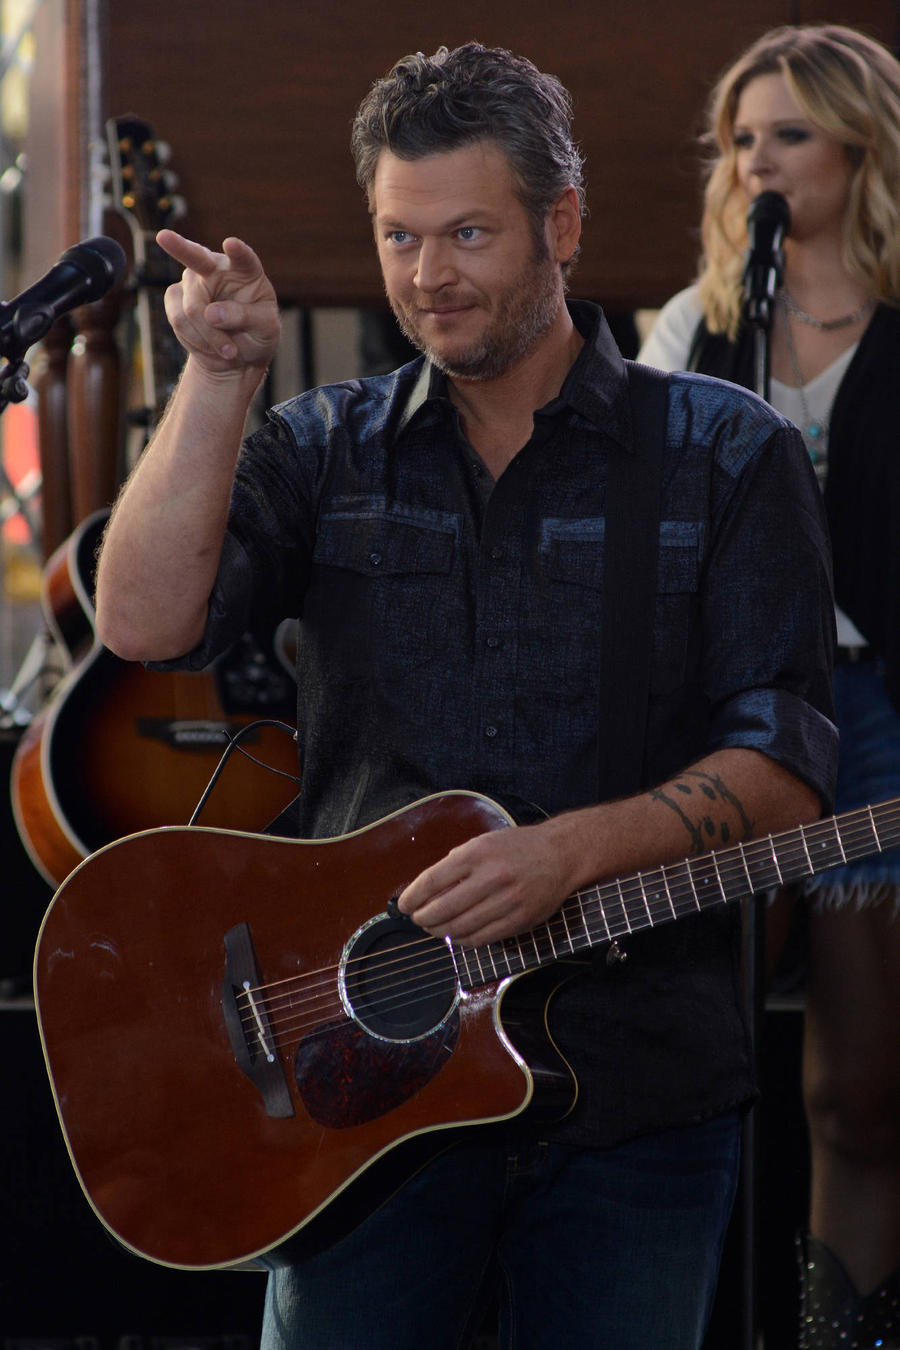 Blake Shelton Gets Into Online Dispute With Westboro Baptist Church